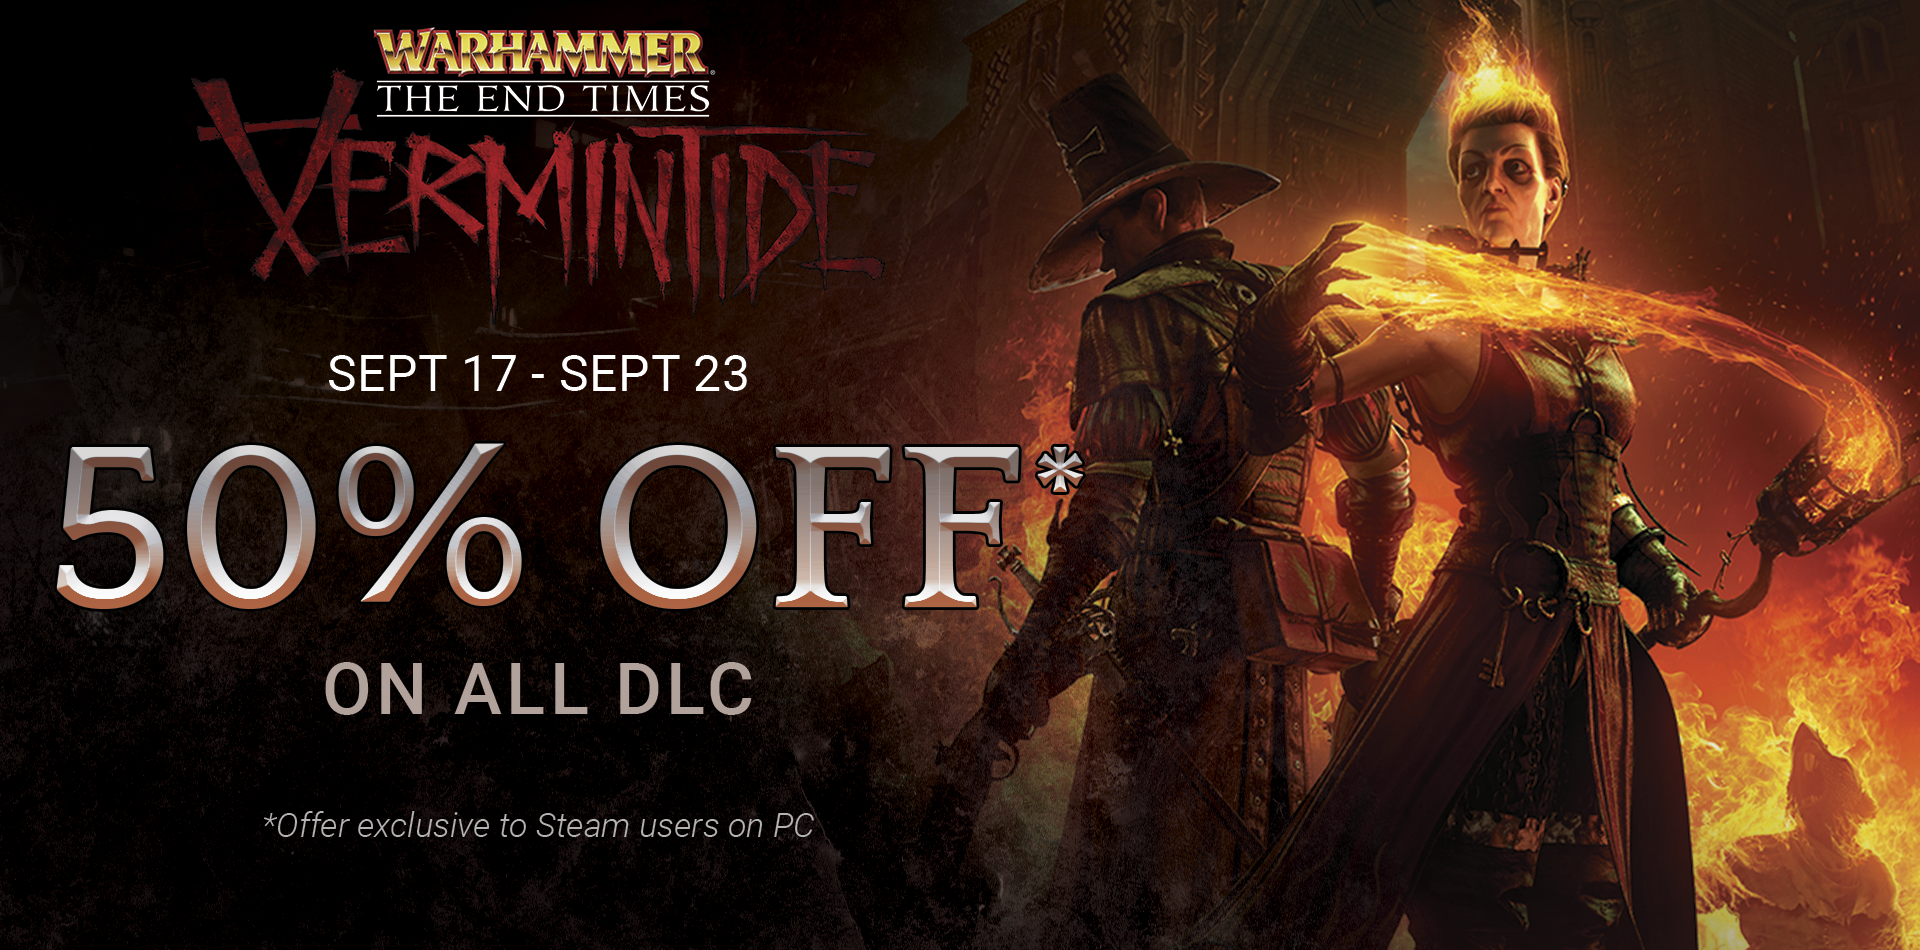 Warhammer End Times Vermintide On Steam Sticker Logo Nvidia Geforce Gt Green Optimus Gtx 50 Discount All 1 Dlc